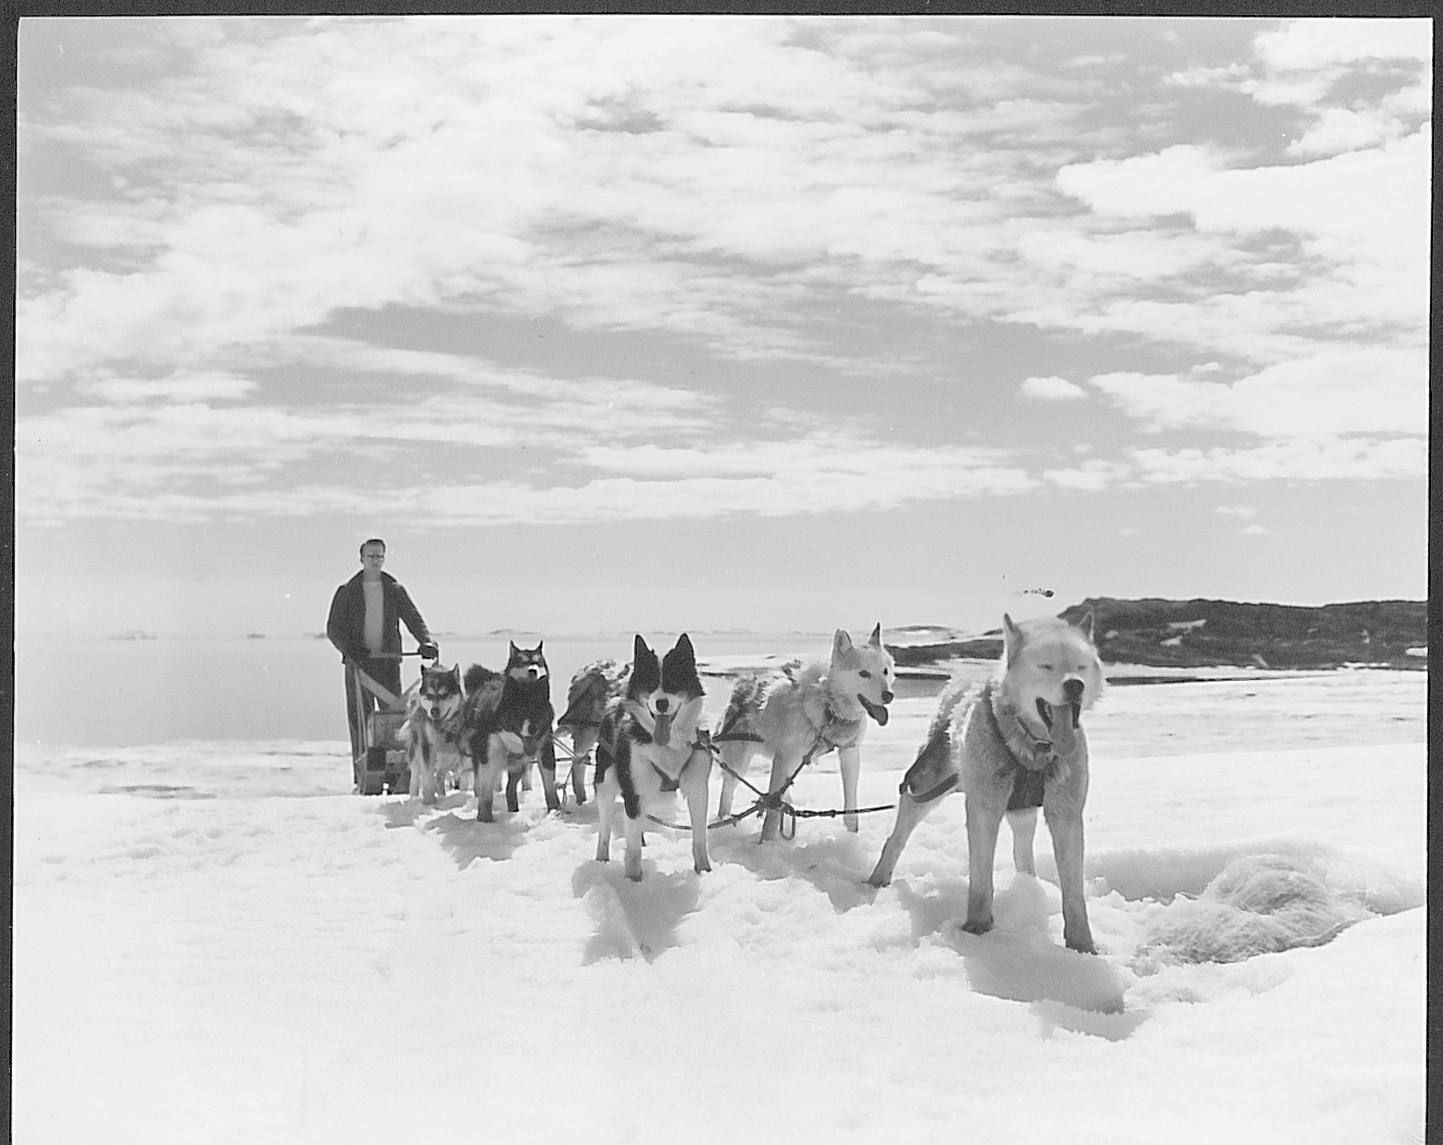 Huskies were brought to Wilkes by the Americans in 1957, and were augmented by some brought down by the Australians when they took over the station in 1959.